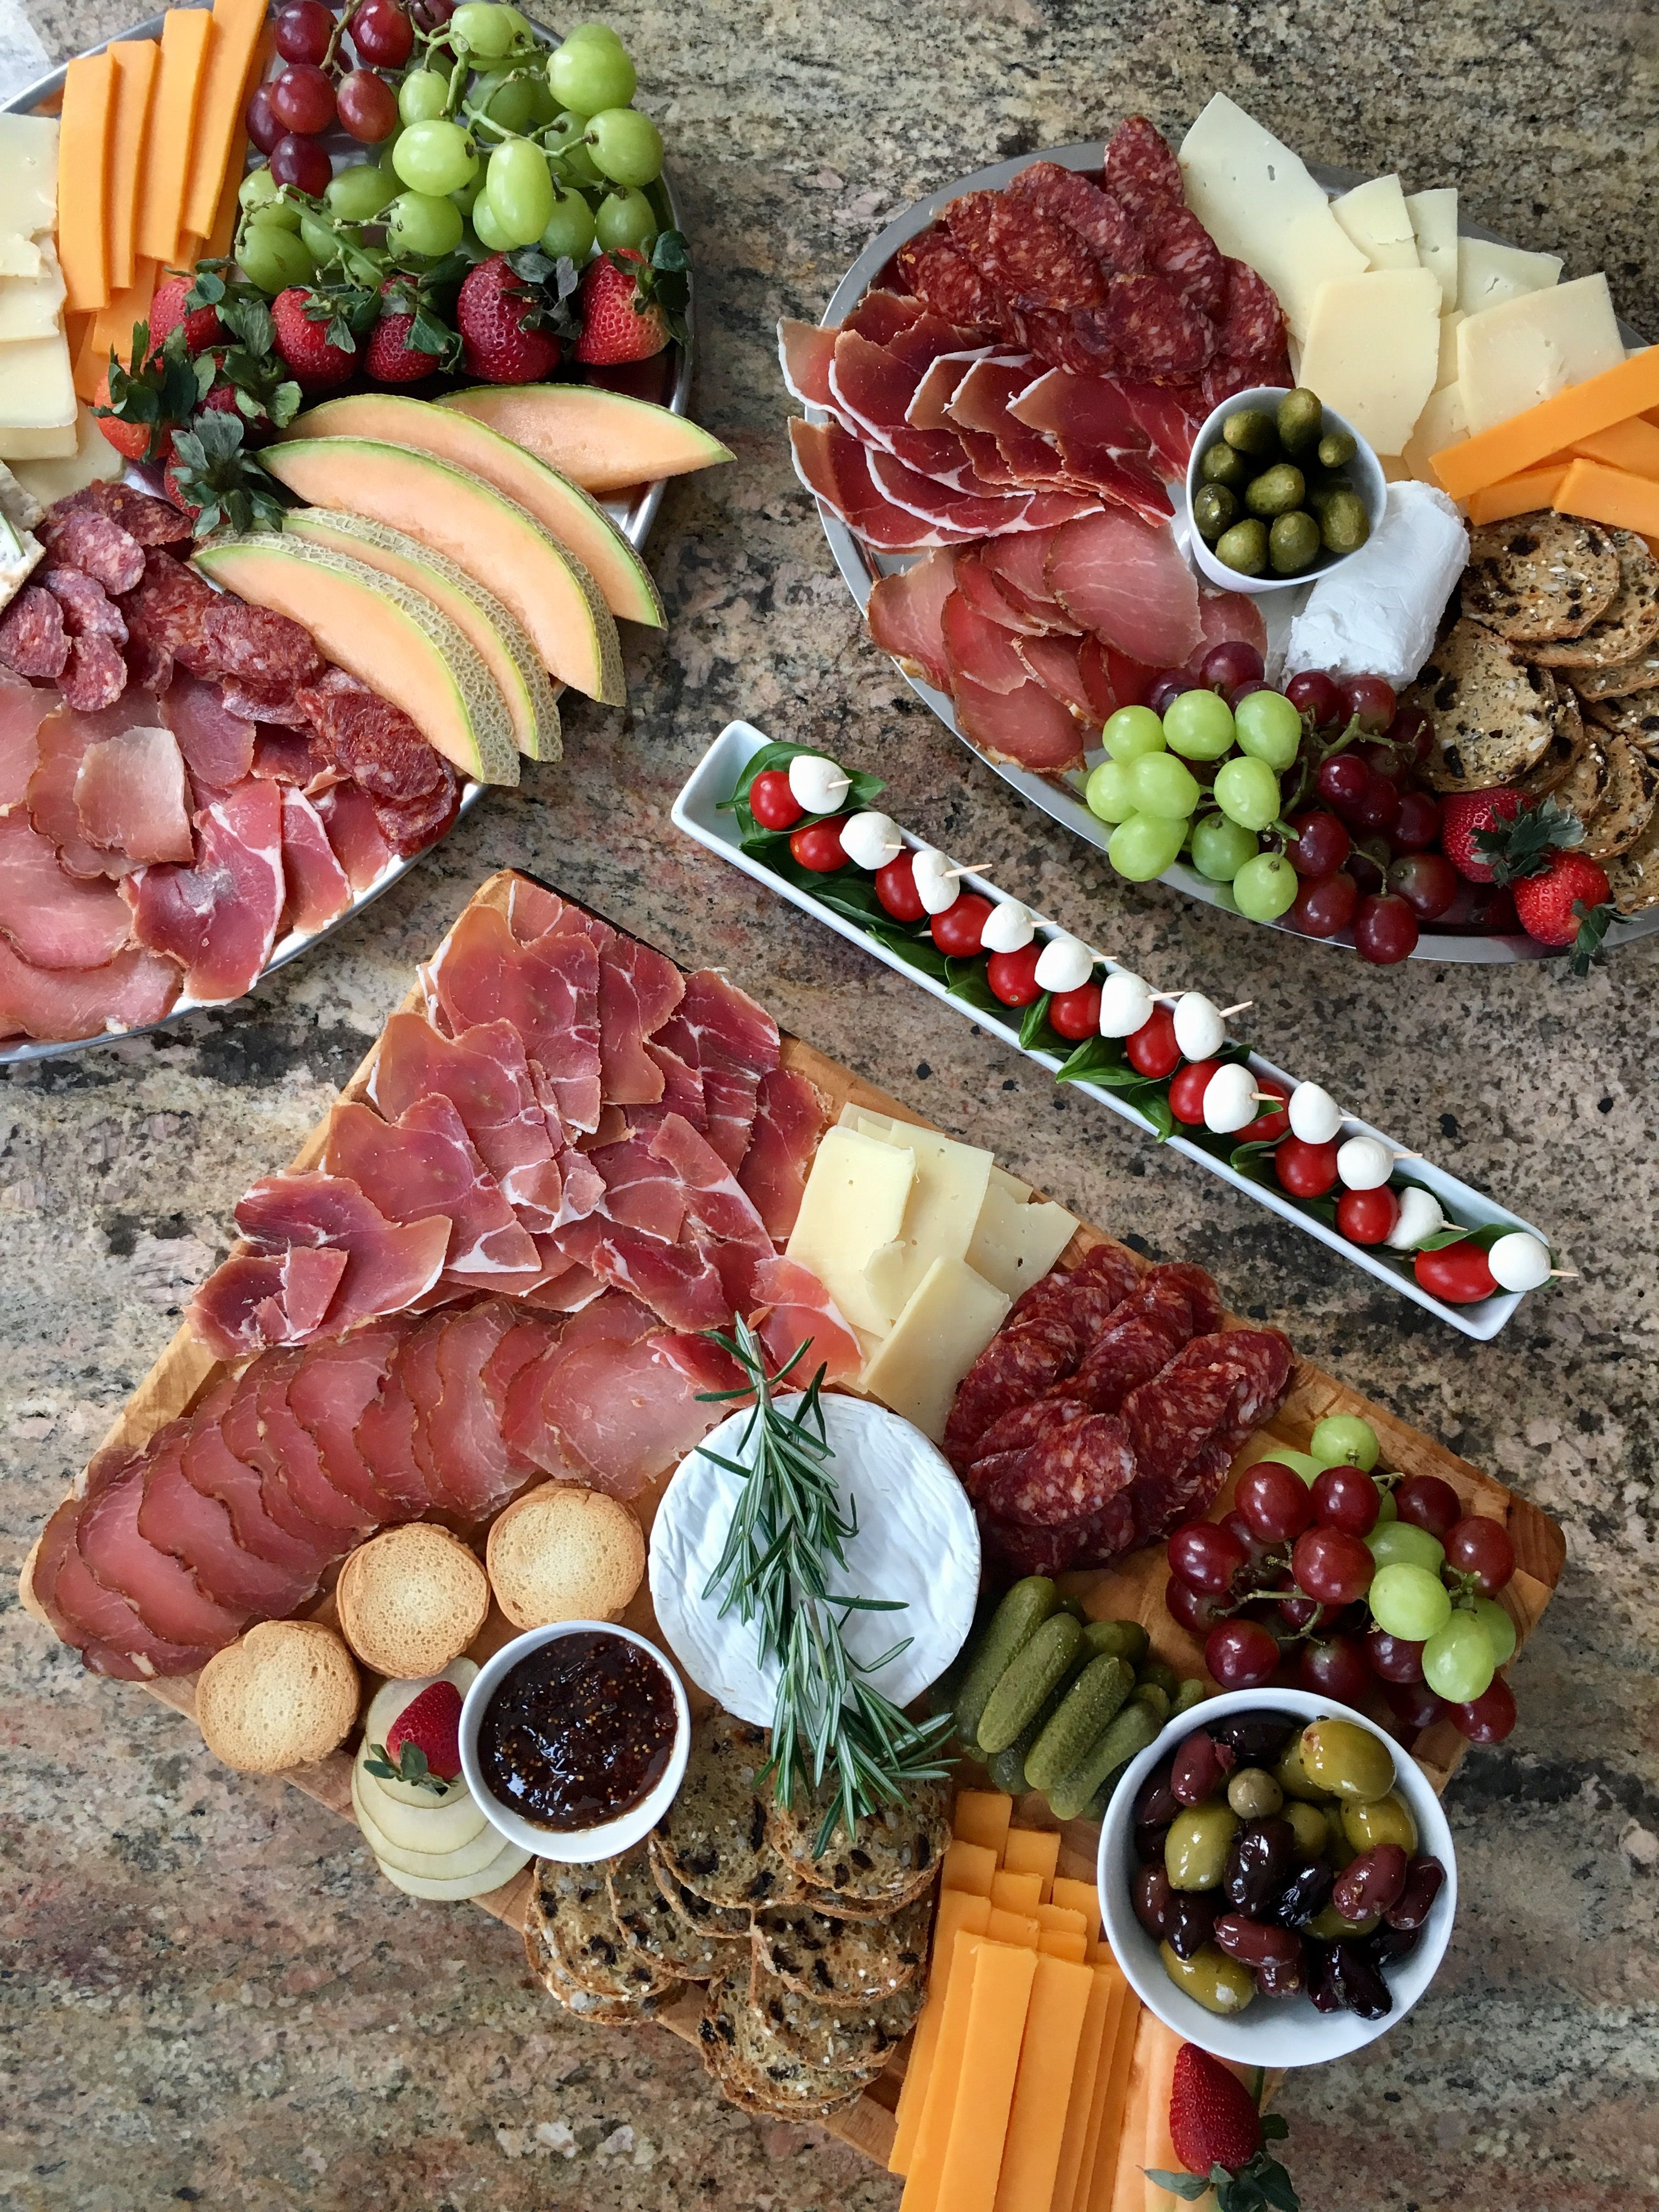 Croatian Prosciutto Sausages And Cheeses Party Food Platters Croatian Recipes Healthy Holiday Recipes